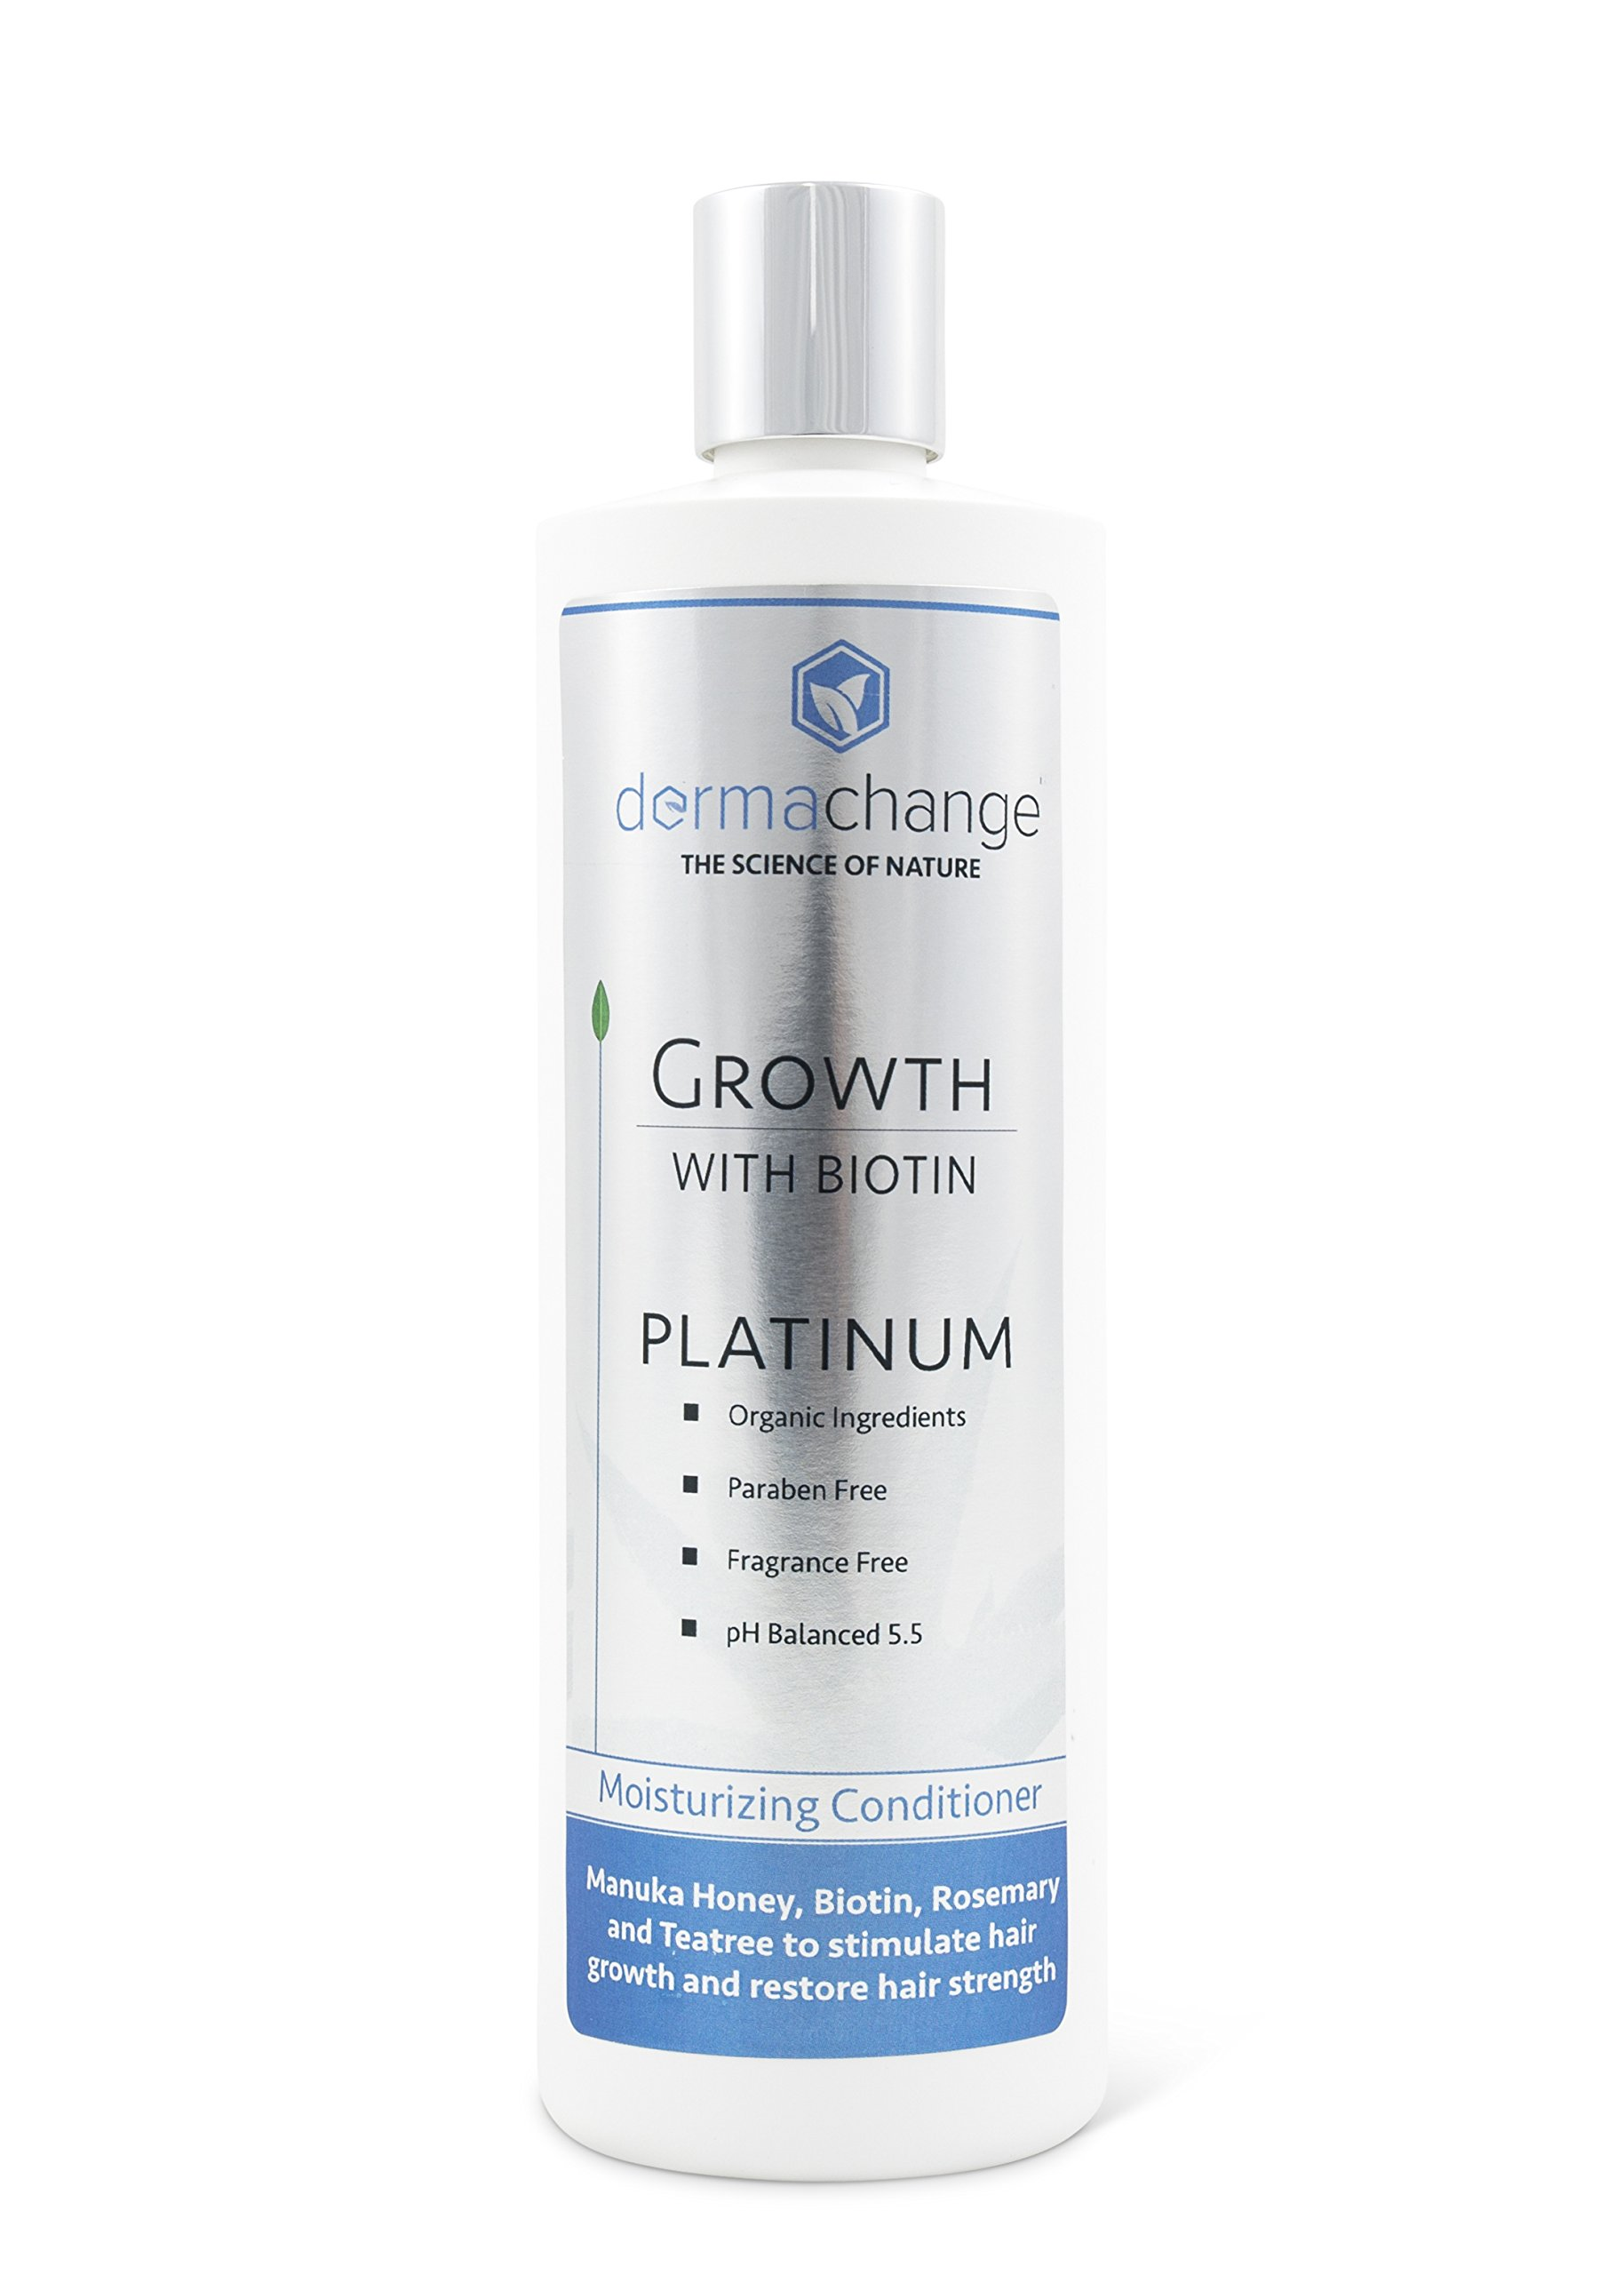 DermaChange Platinum Hair Growth Moisturizing Conditioner - With Argan Oil, Biotin & Tea Tree Extract - Supports Hair Regrowth - Hair Loss Treatments (16 oz) - Made in USA by DermaChange